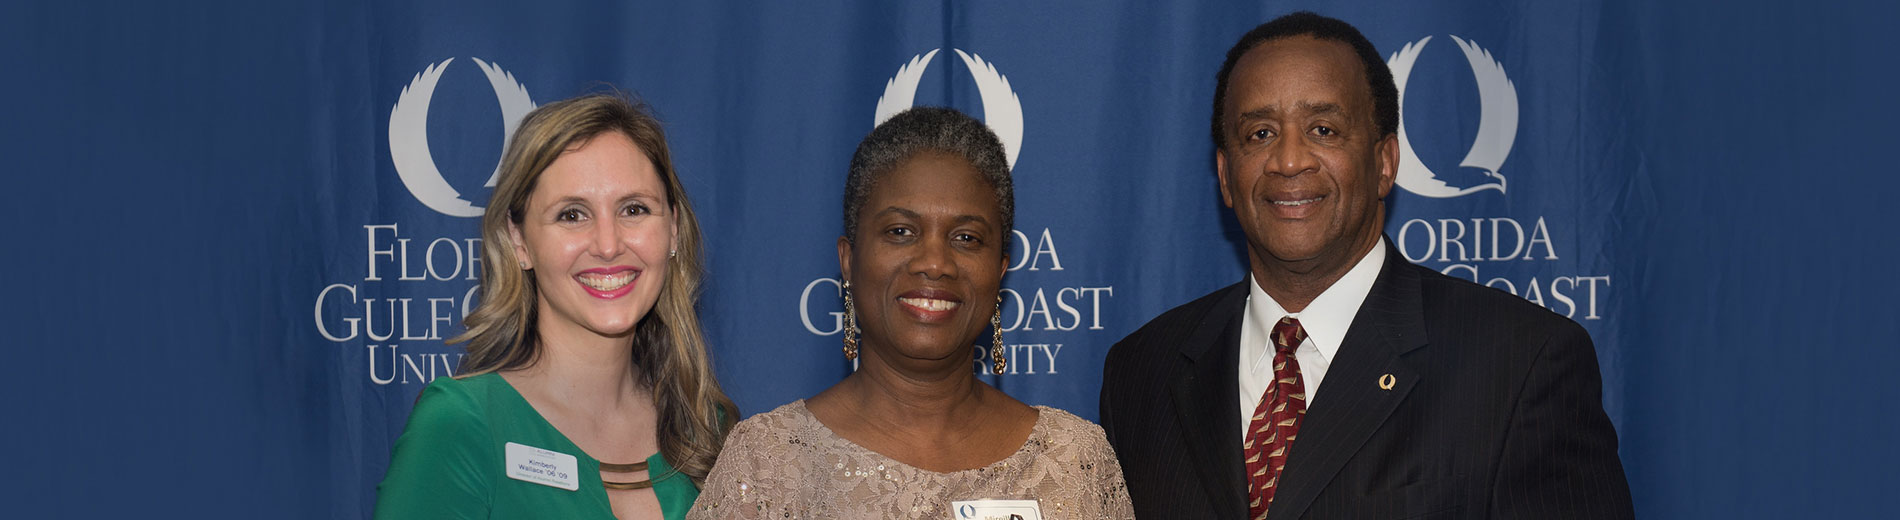 photo shows FGCU Alumni Award winners